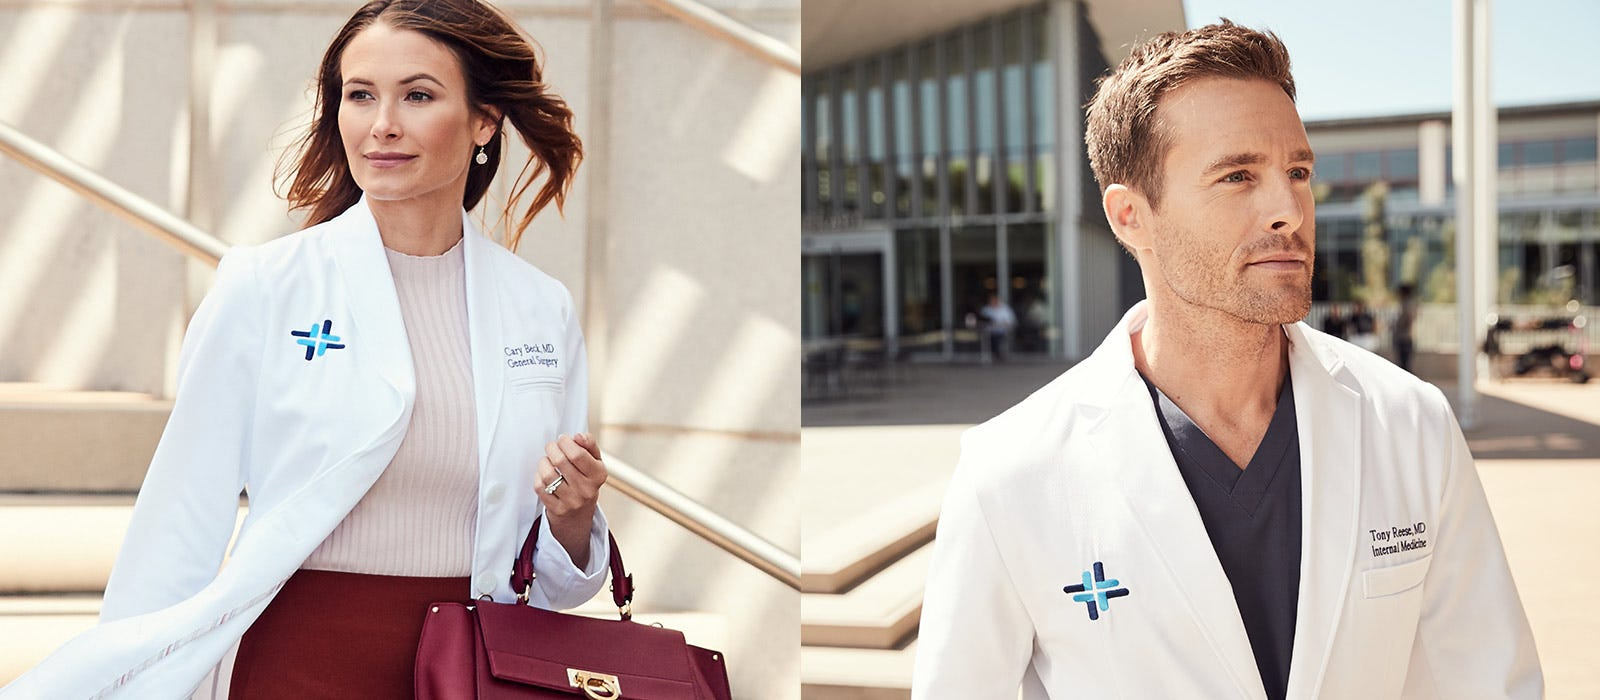 scrubs and lab coats by Medelita